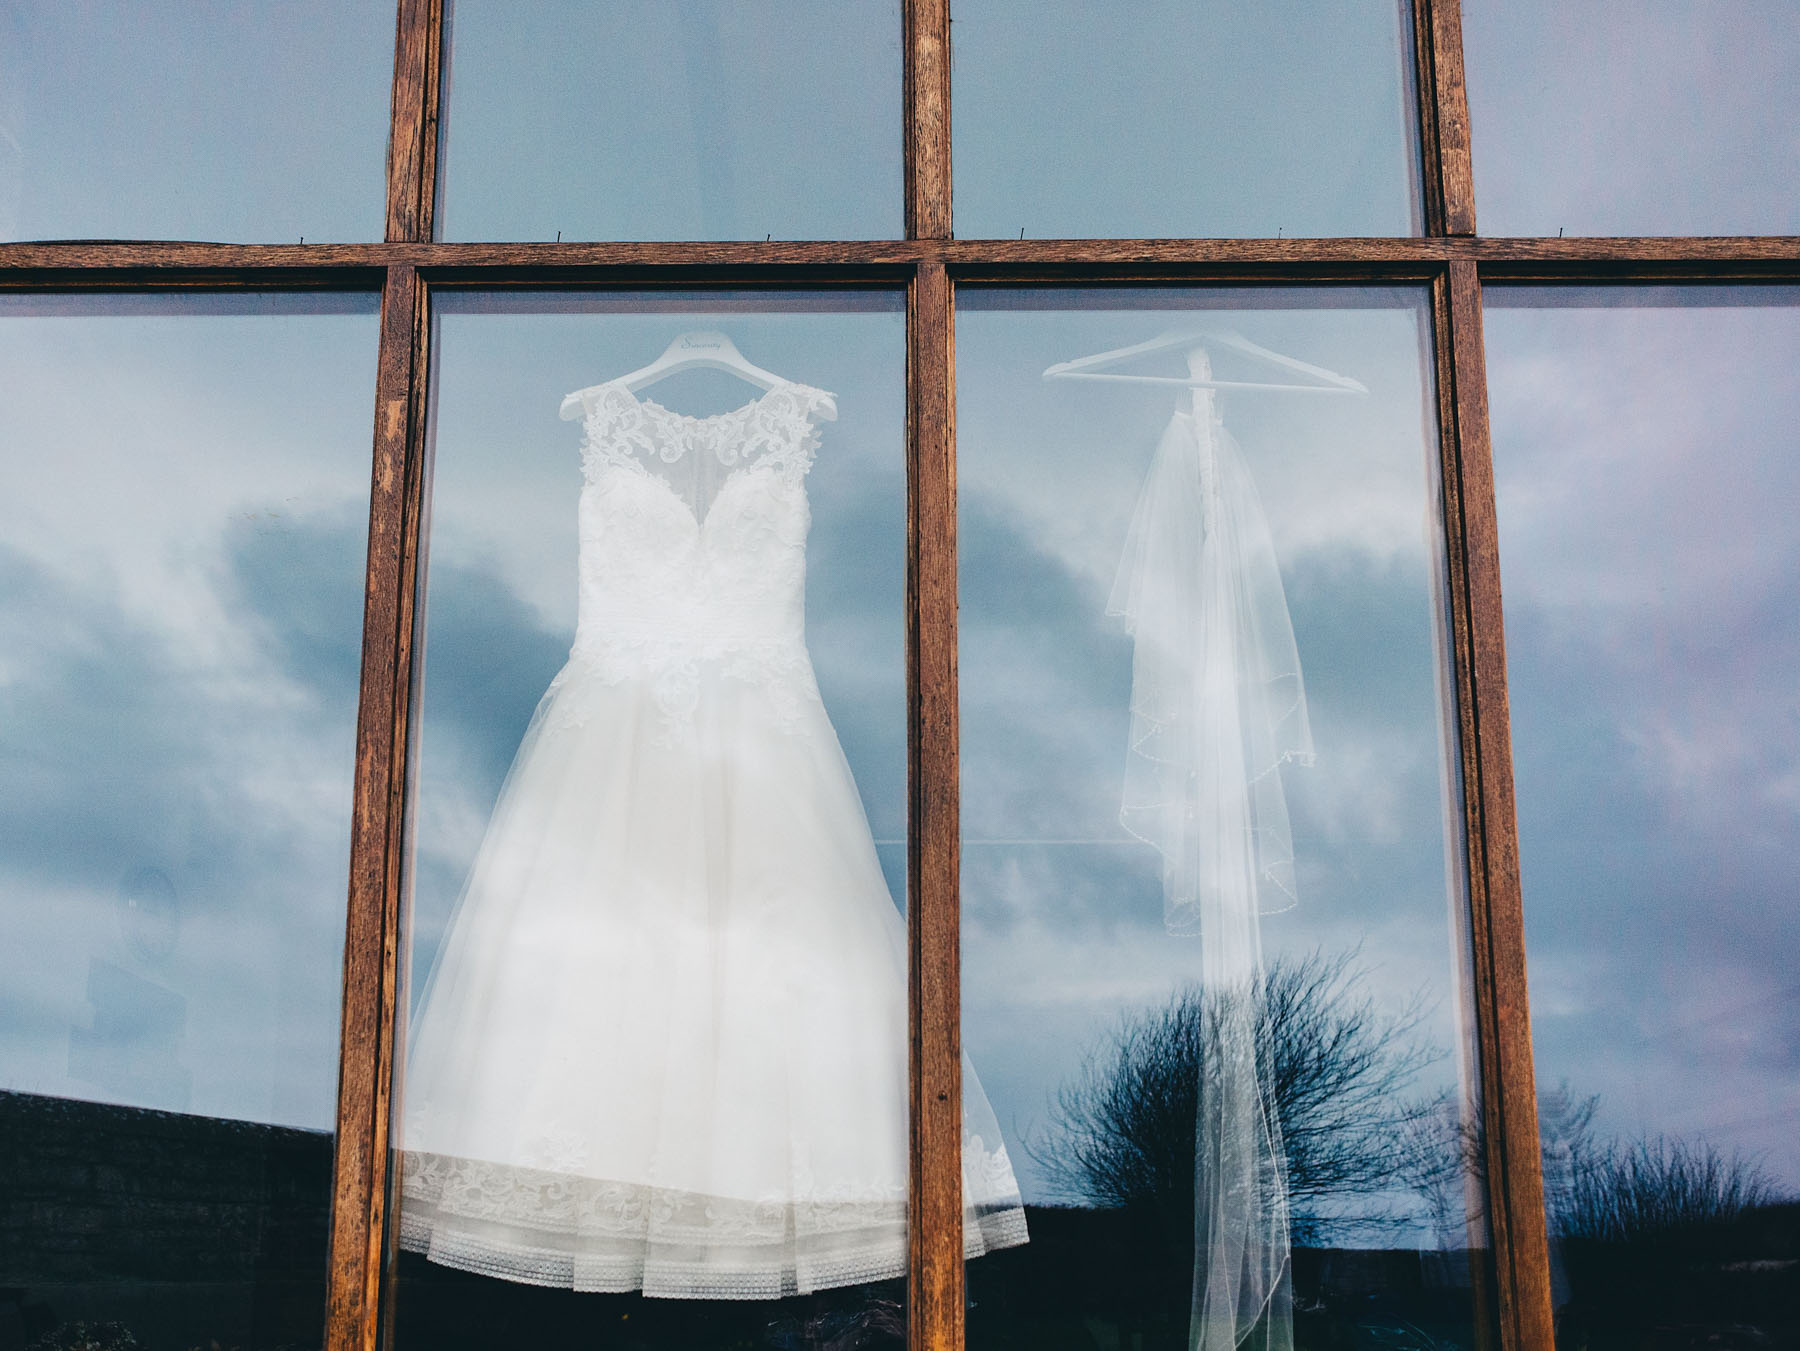 Wedding dress hung up in window